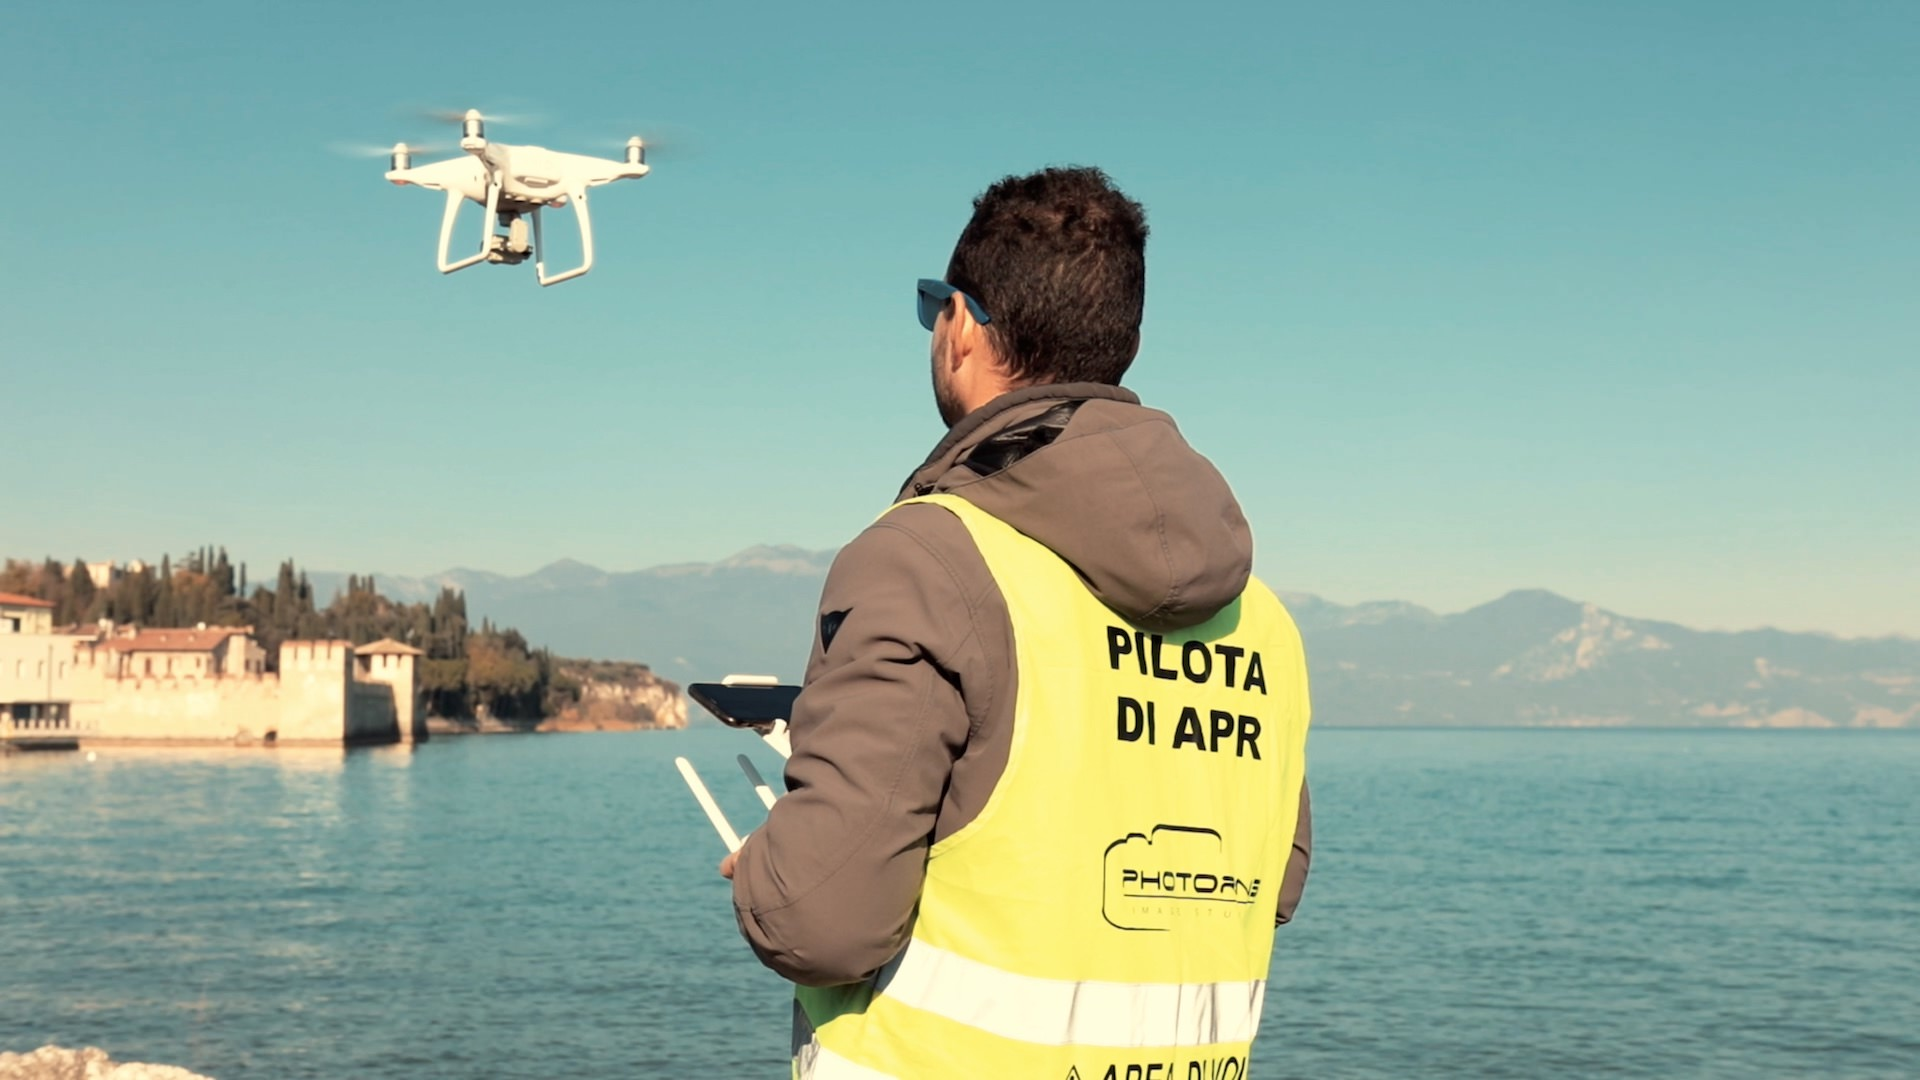 Photoring drone